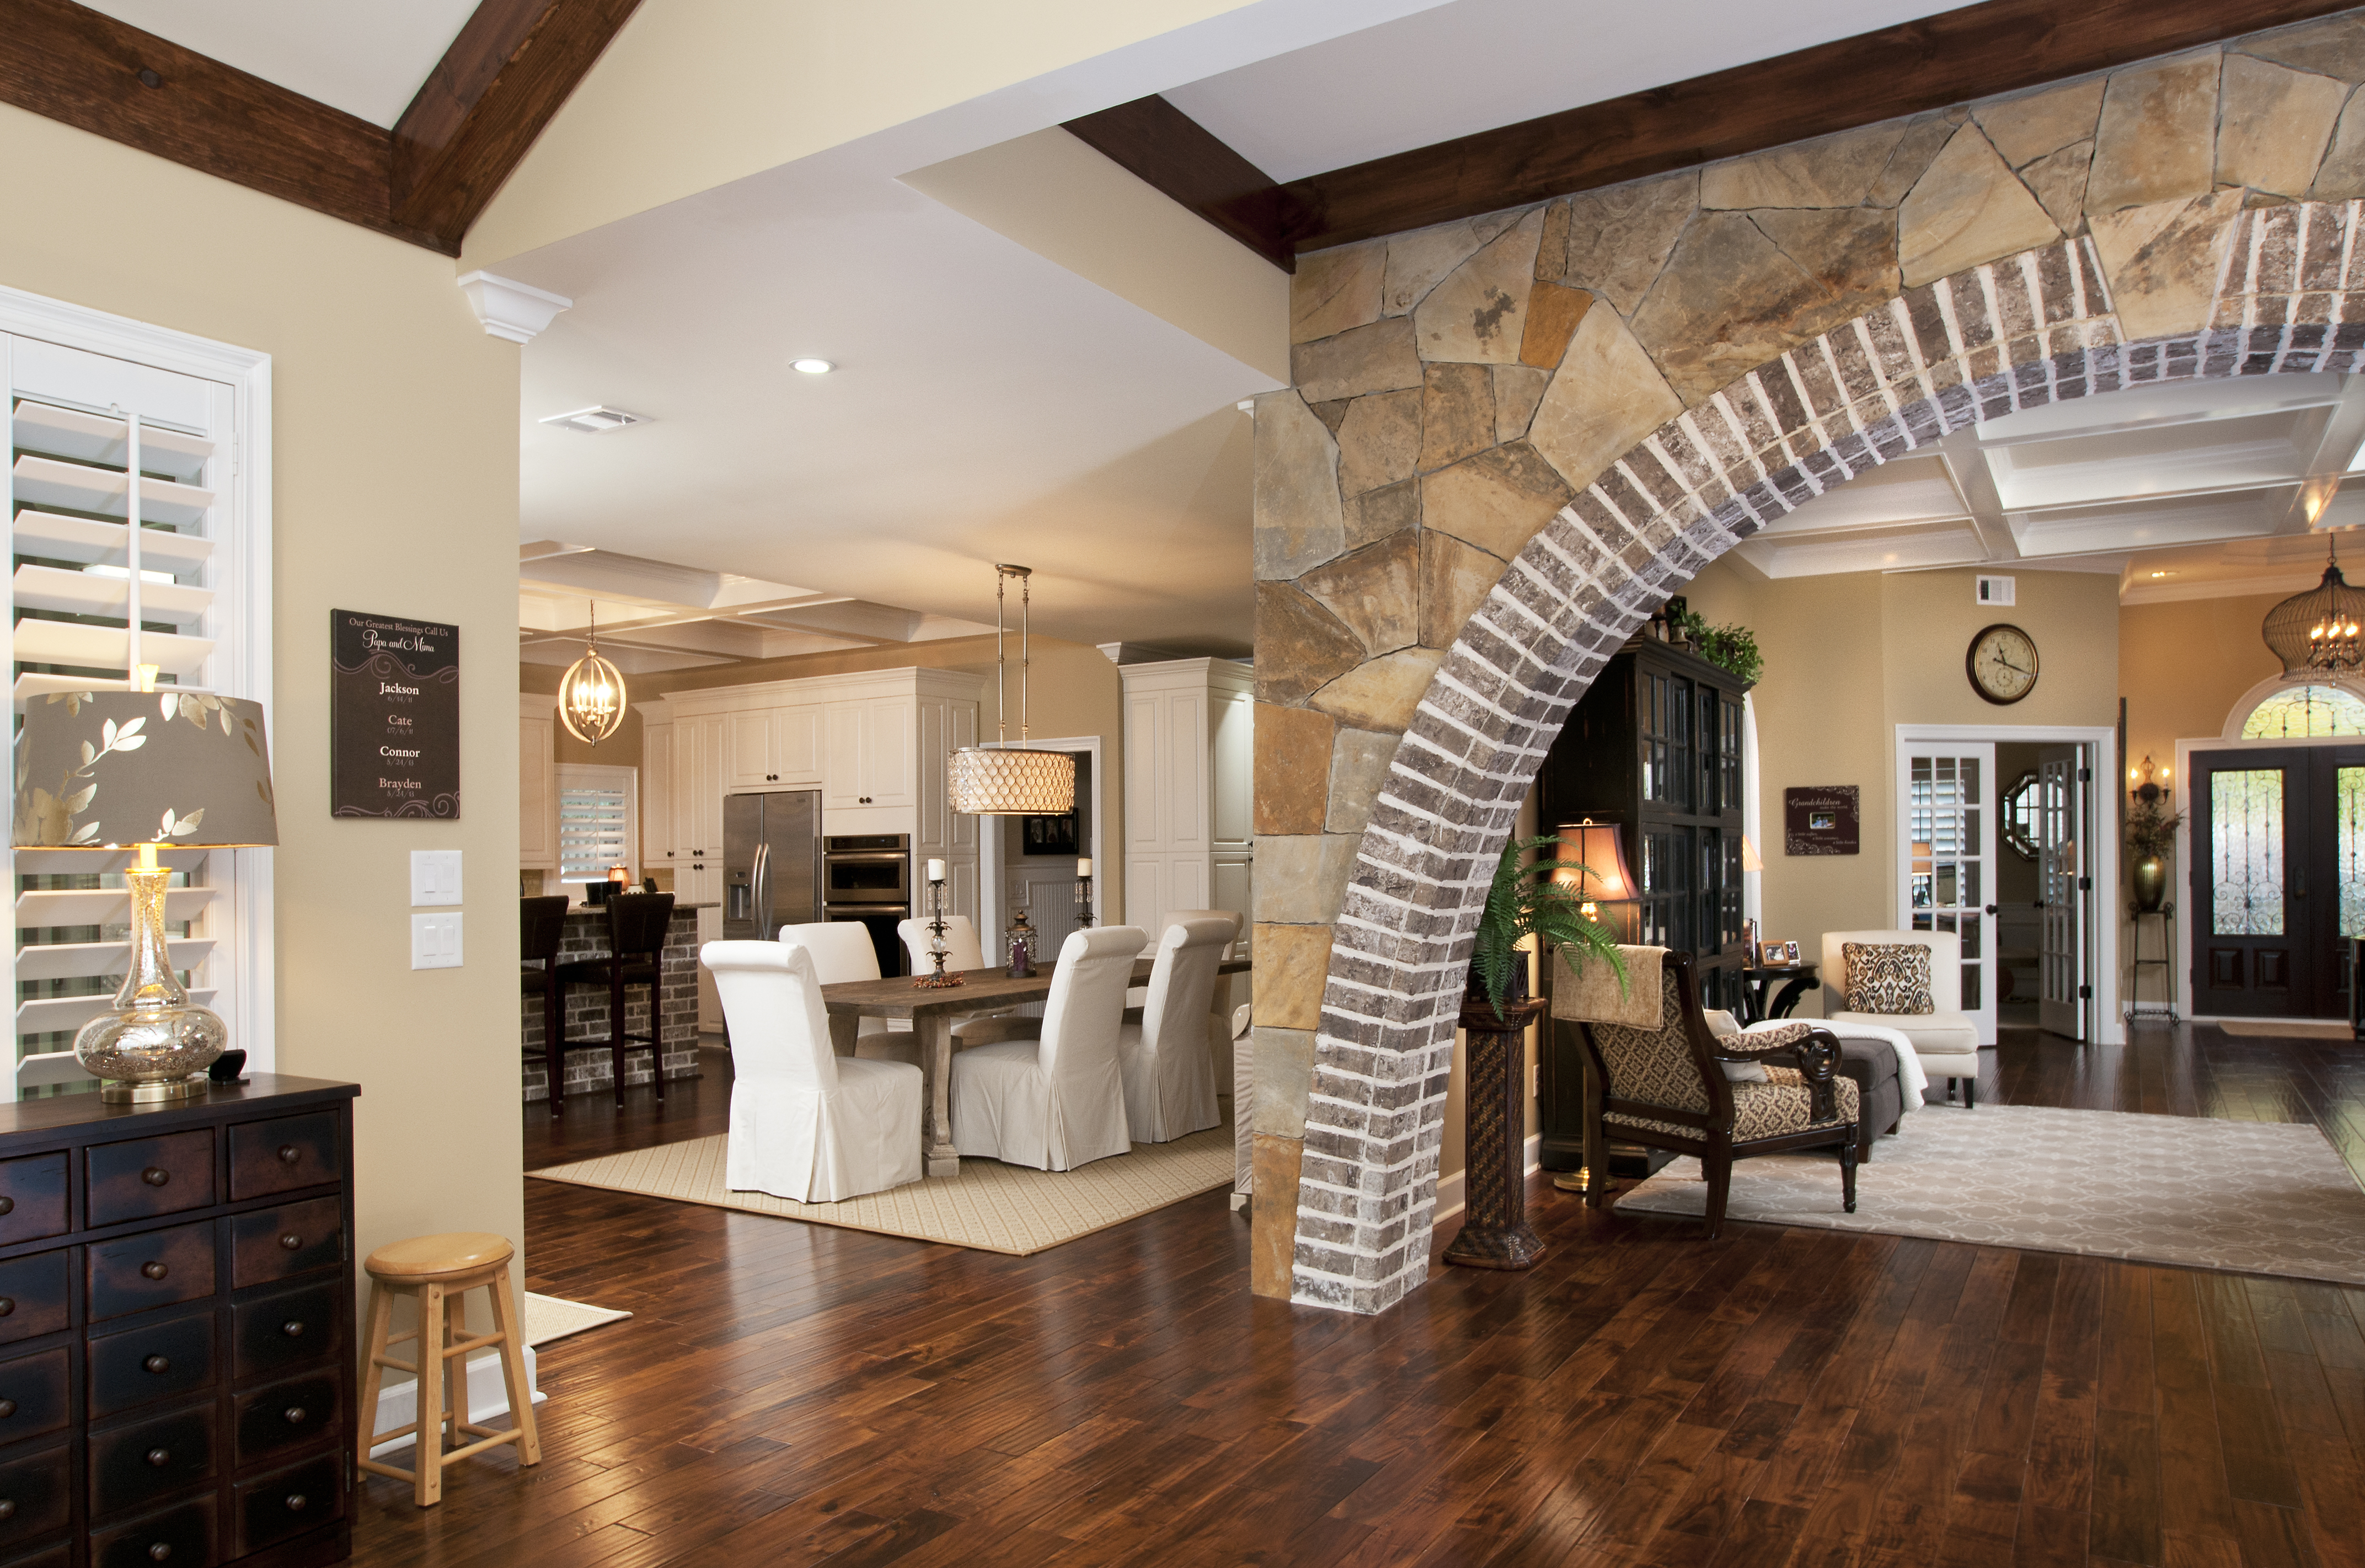 Kitchen Entryway Totally Dependable Contracting Services Atlanta Home Improvement